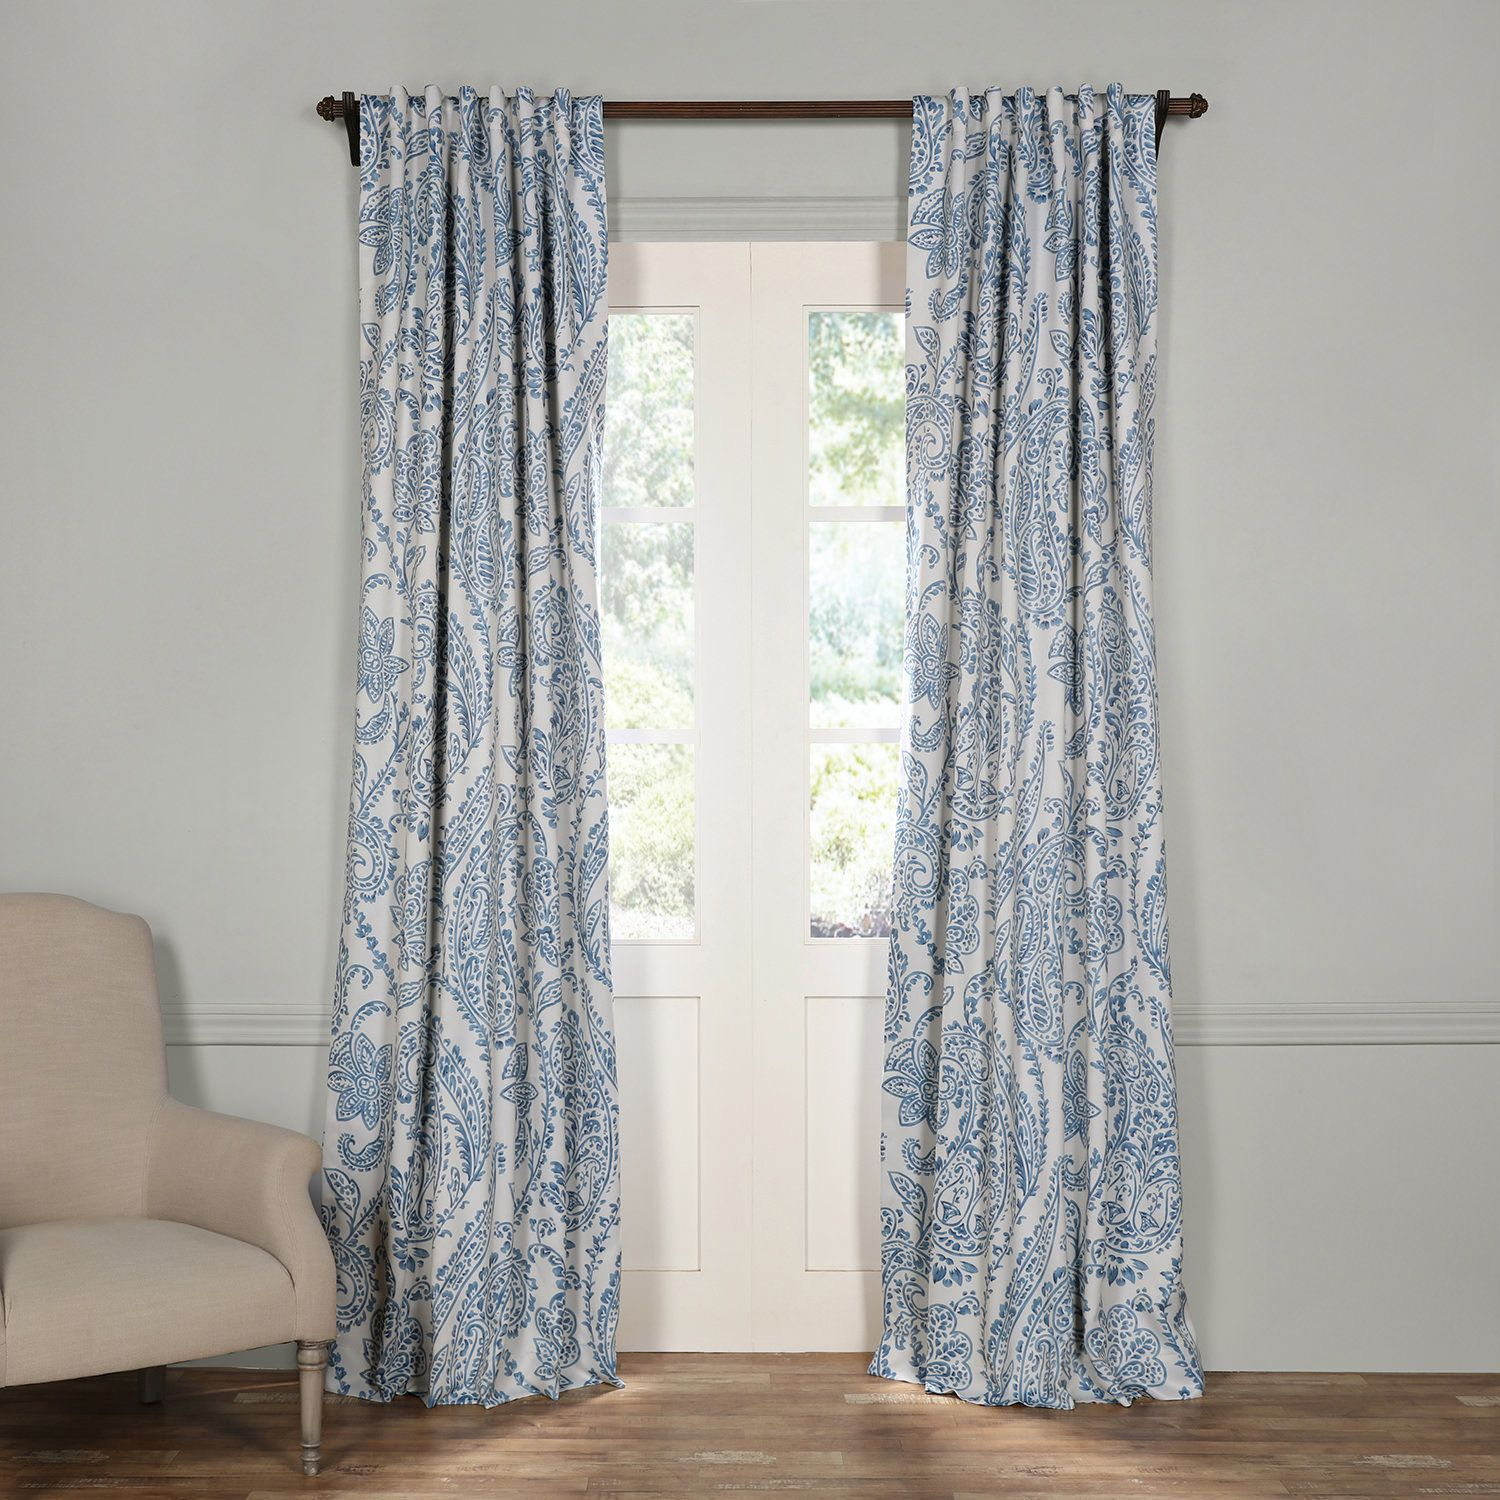 China Blue Curtains Exclusive Fabrics Tea Time China Blue Blackout Curtain Panel Pair